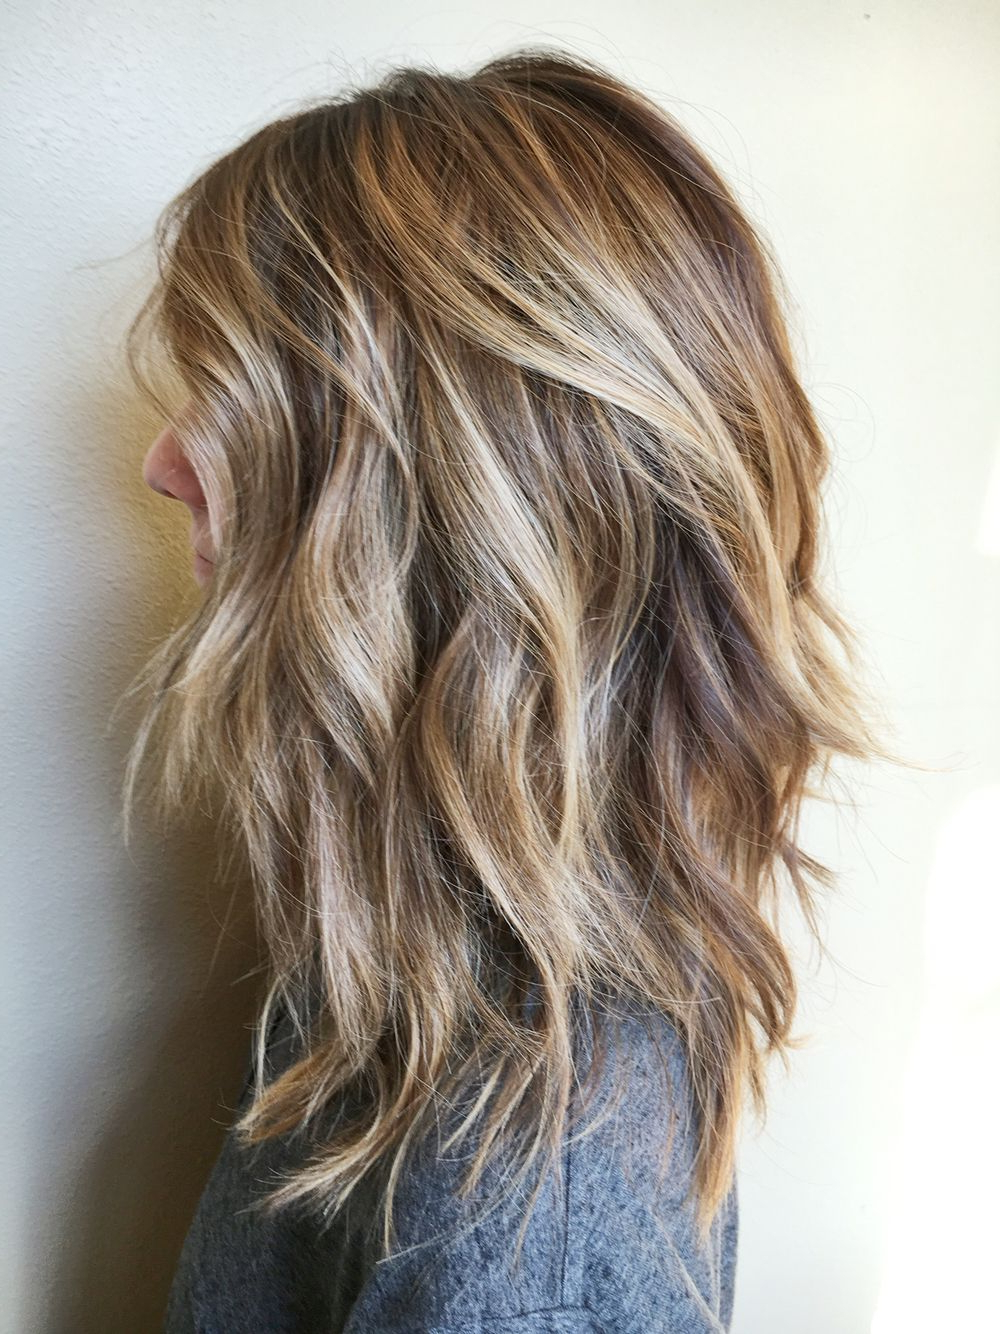 40 Amazing Medium Length Hairstyles & Shoulder Length Haircuts With Regard To Current Short, Medium, And Long Layers For Long Hairstyles (View 15 of 20)